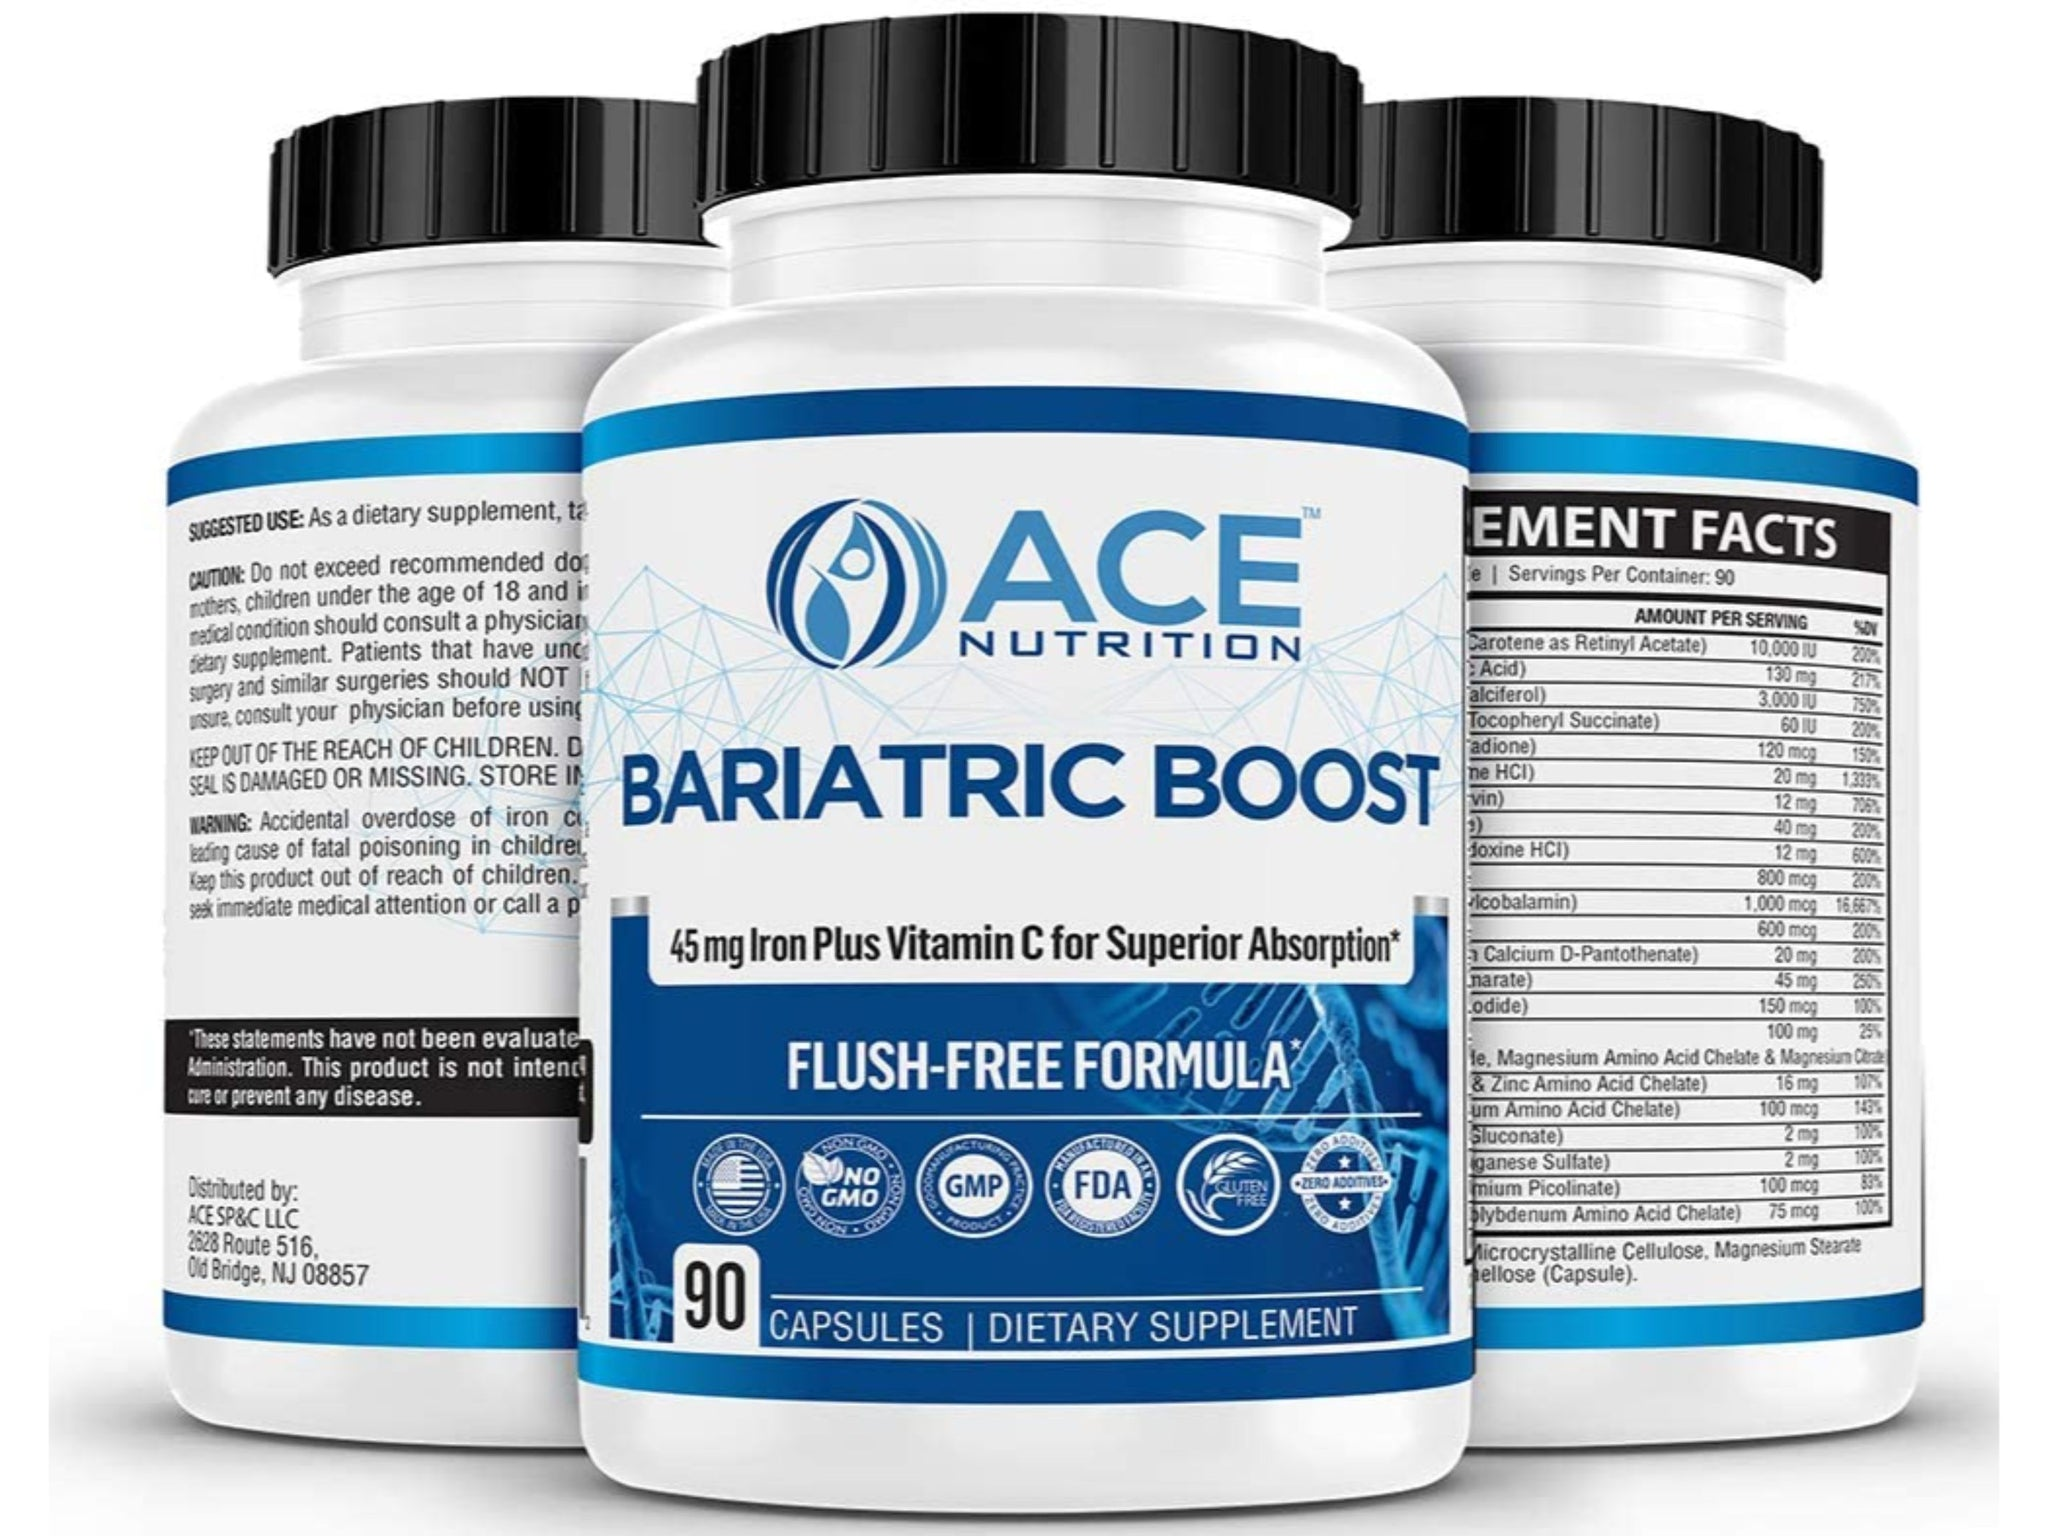 Bariatric Boost One-A-Day Multivitamin 90 Day Supply with 45mg Iron